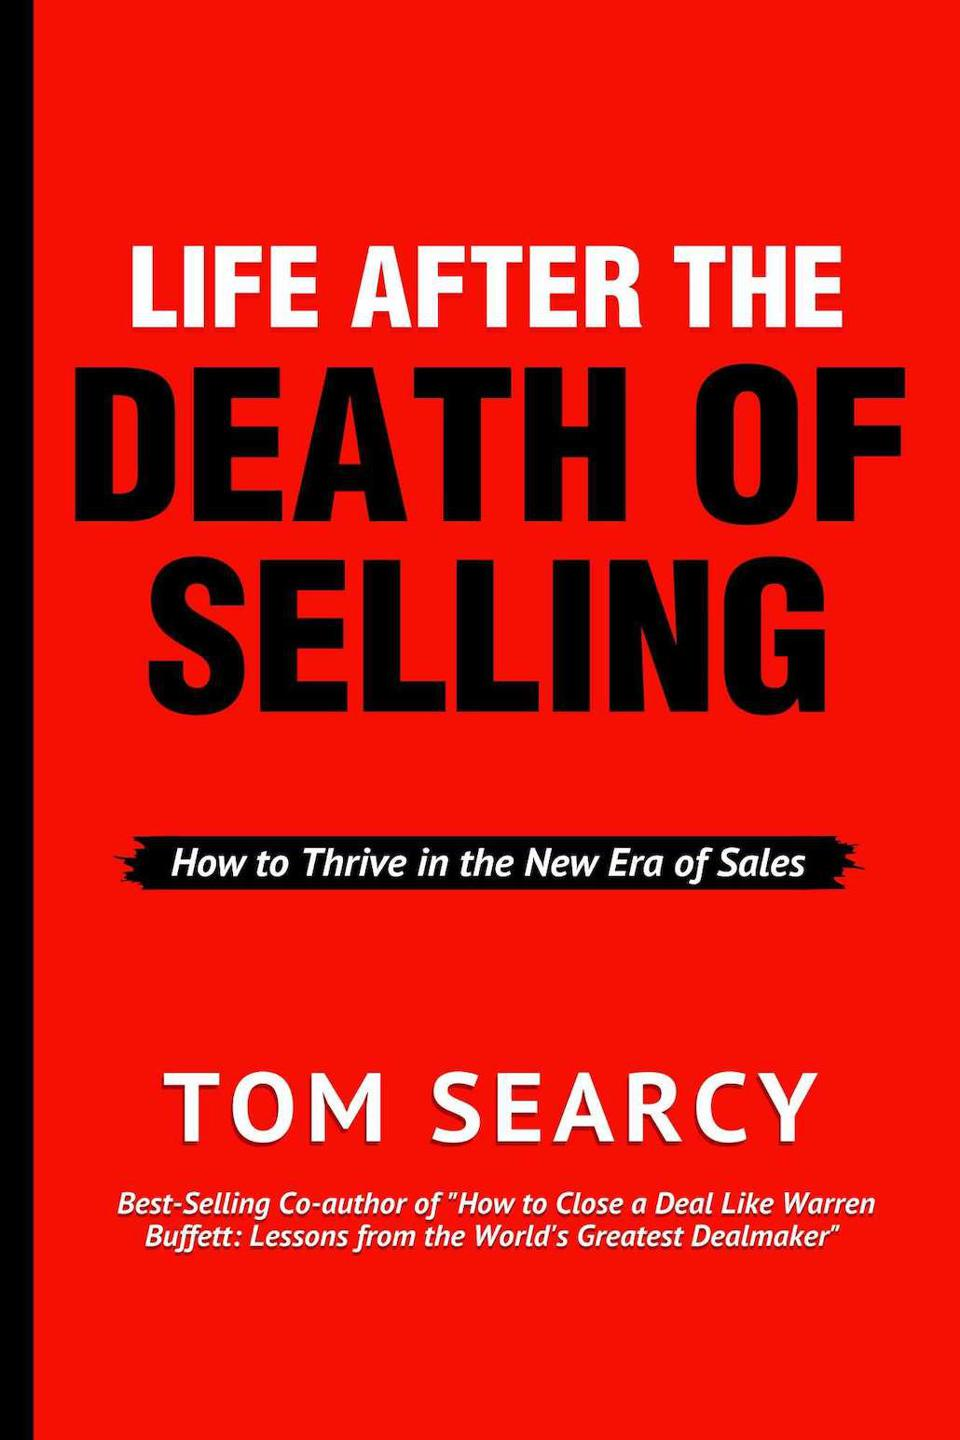 Life After the Death of Selling: How to Thrive in the New Era of Sales by Tom Searcy